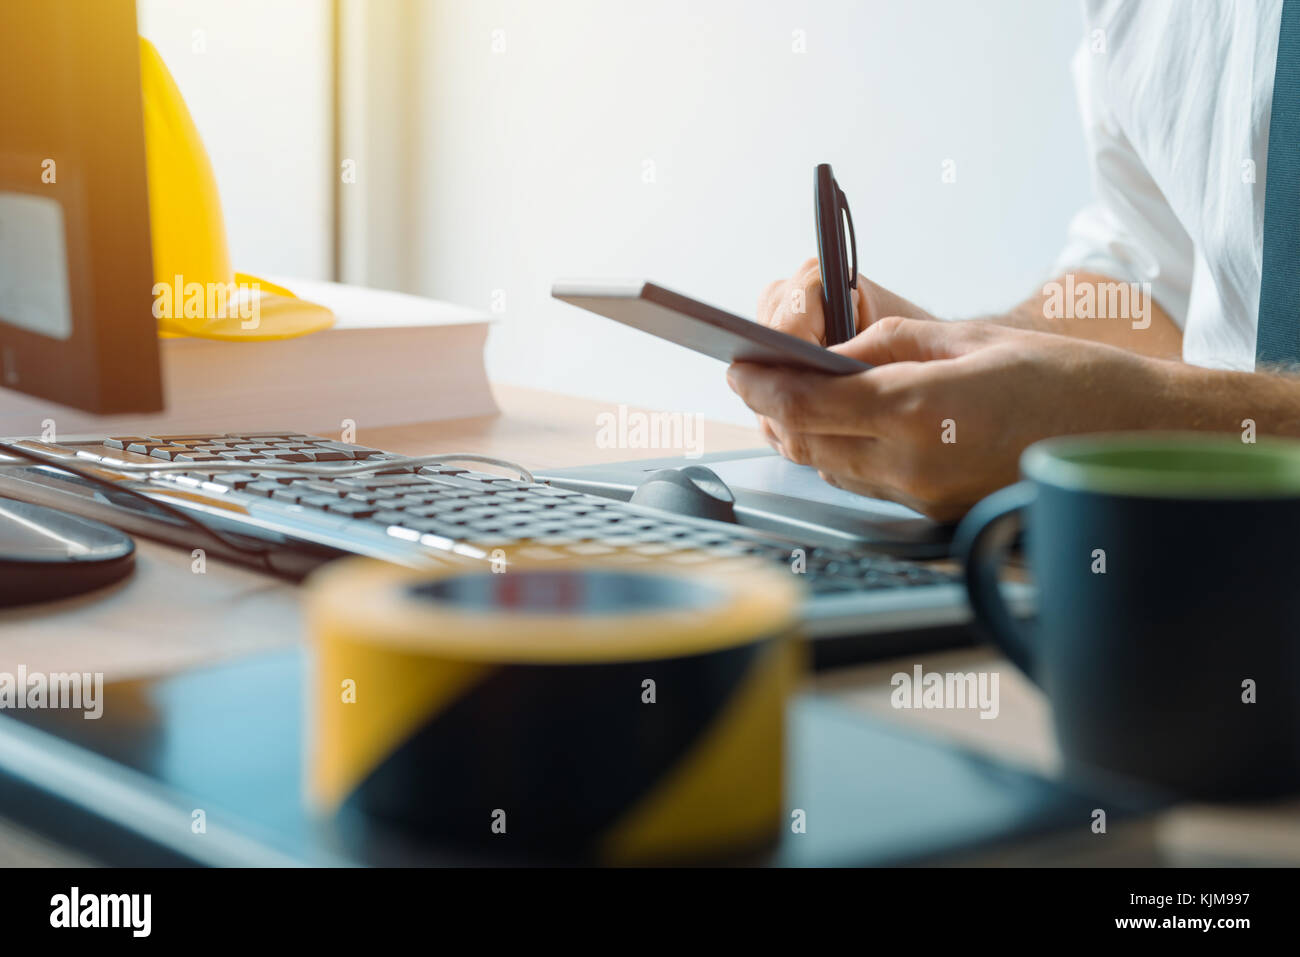 Civil engineer using smartphone in office during the construction industry project development - Stock Image